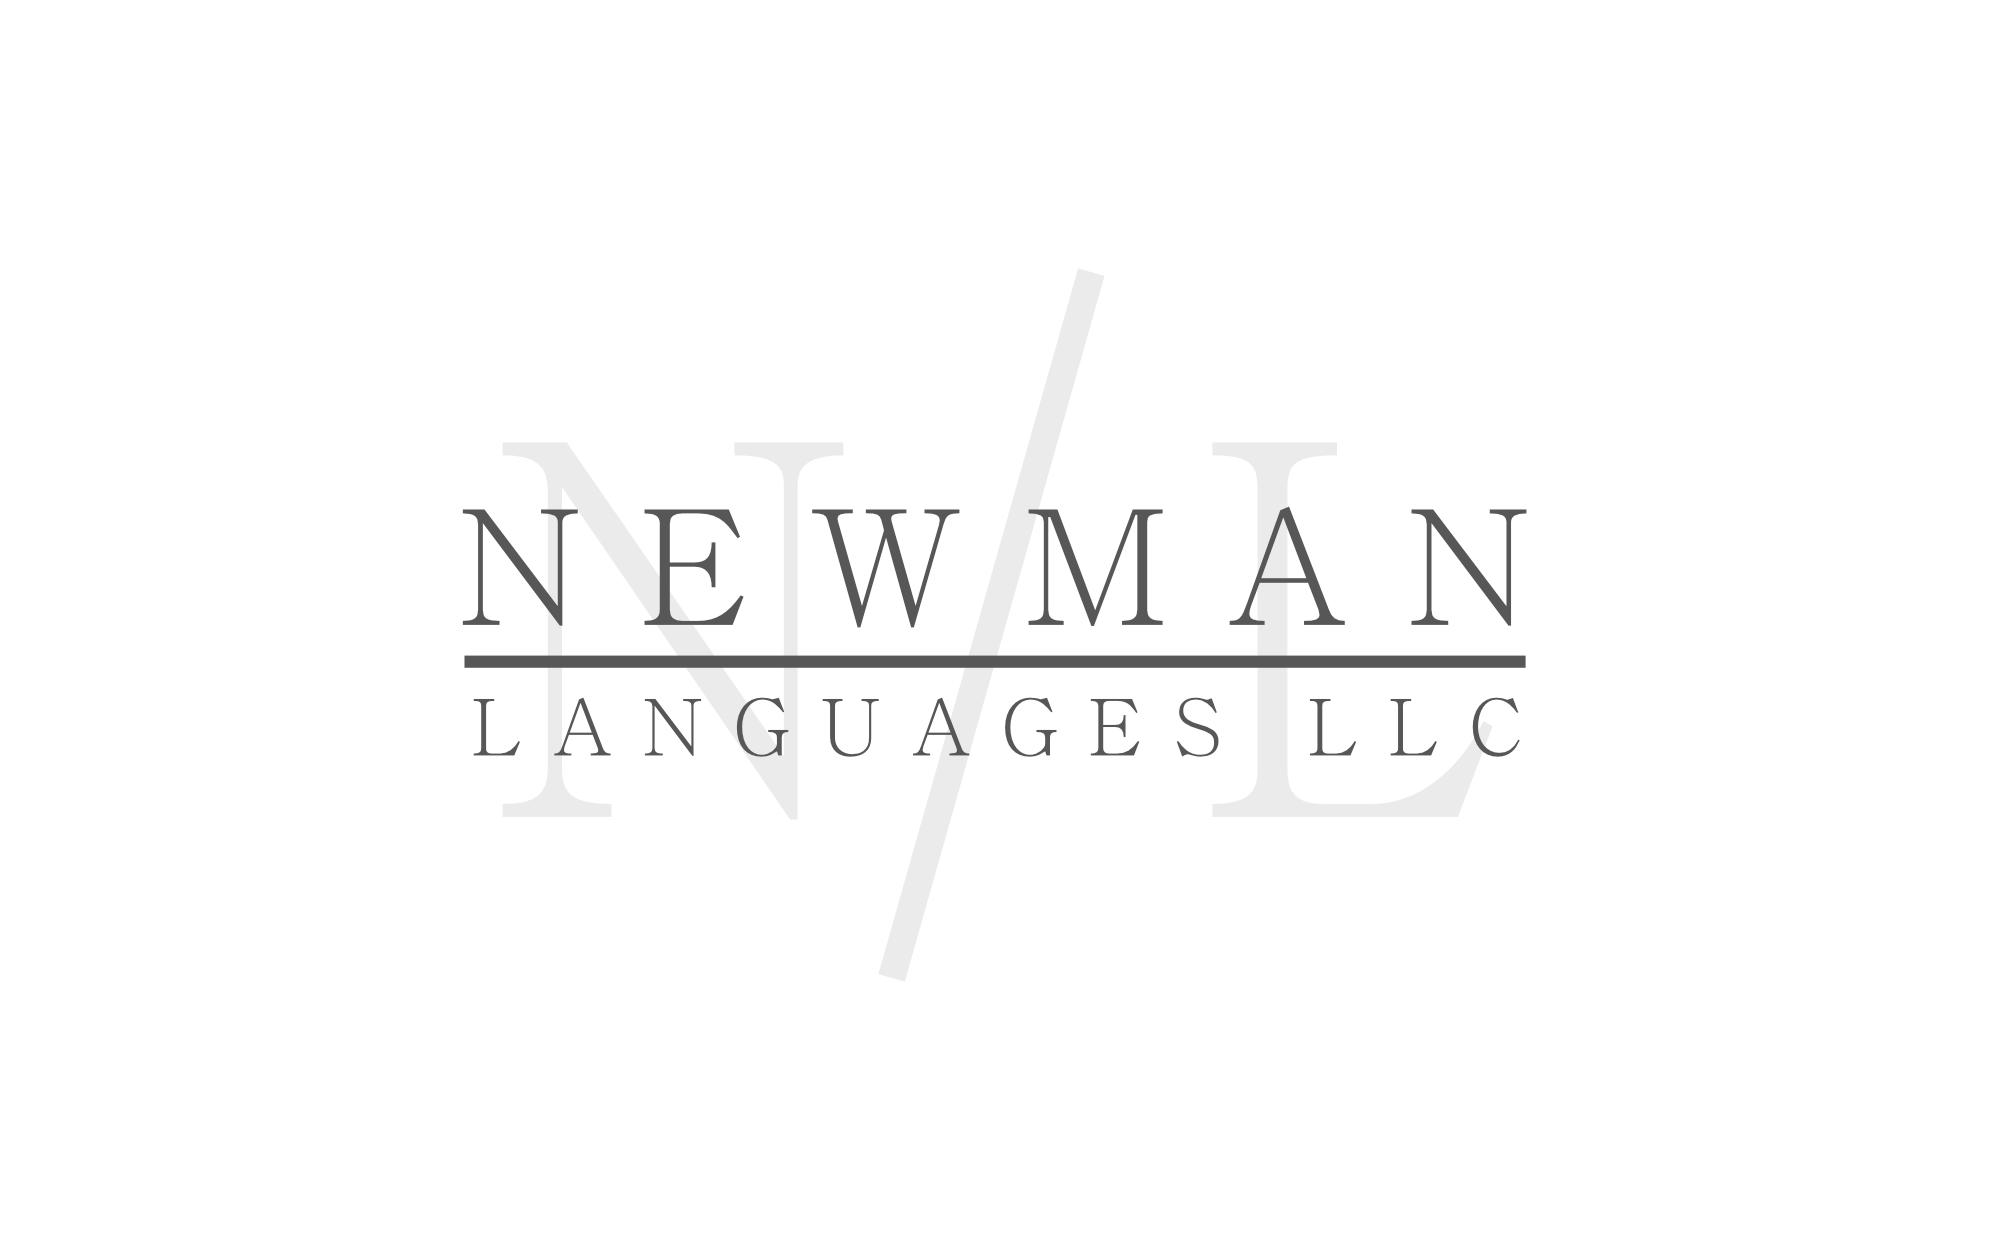 Newman Languages LLC image 0